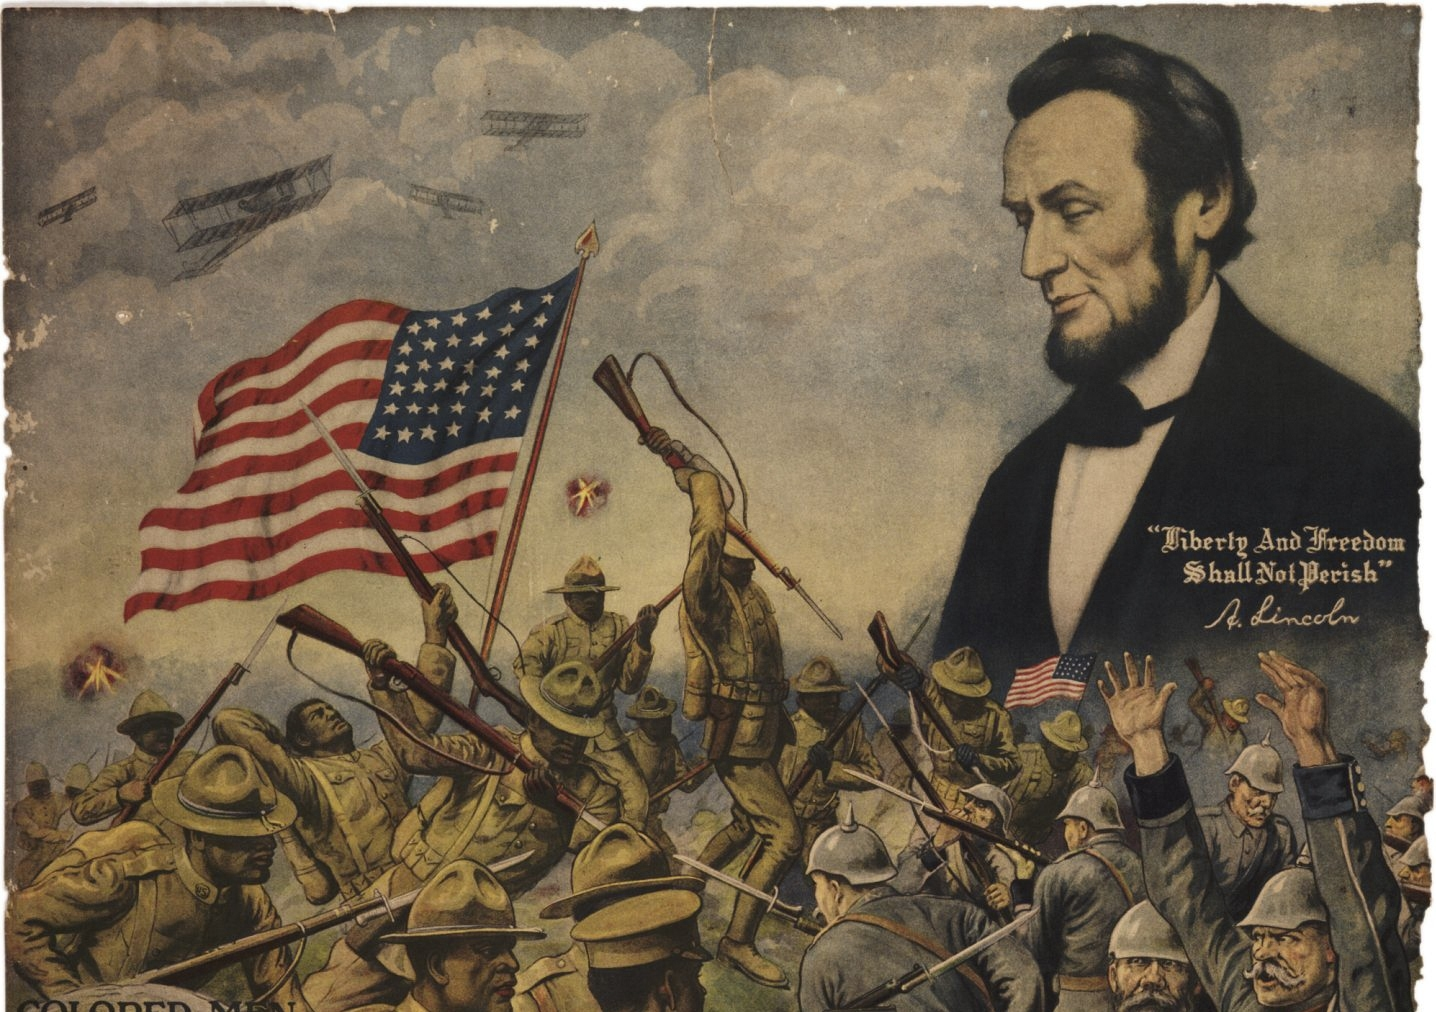 More than half a century after his assassination, this World War I recruiting poster invoked President Abraham Lincoln. (Gilder Lehrman Institute of American History via the New York Times)